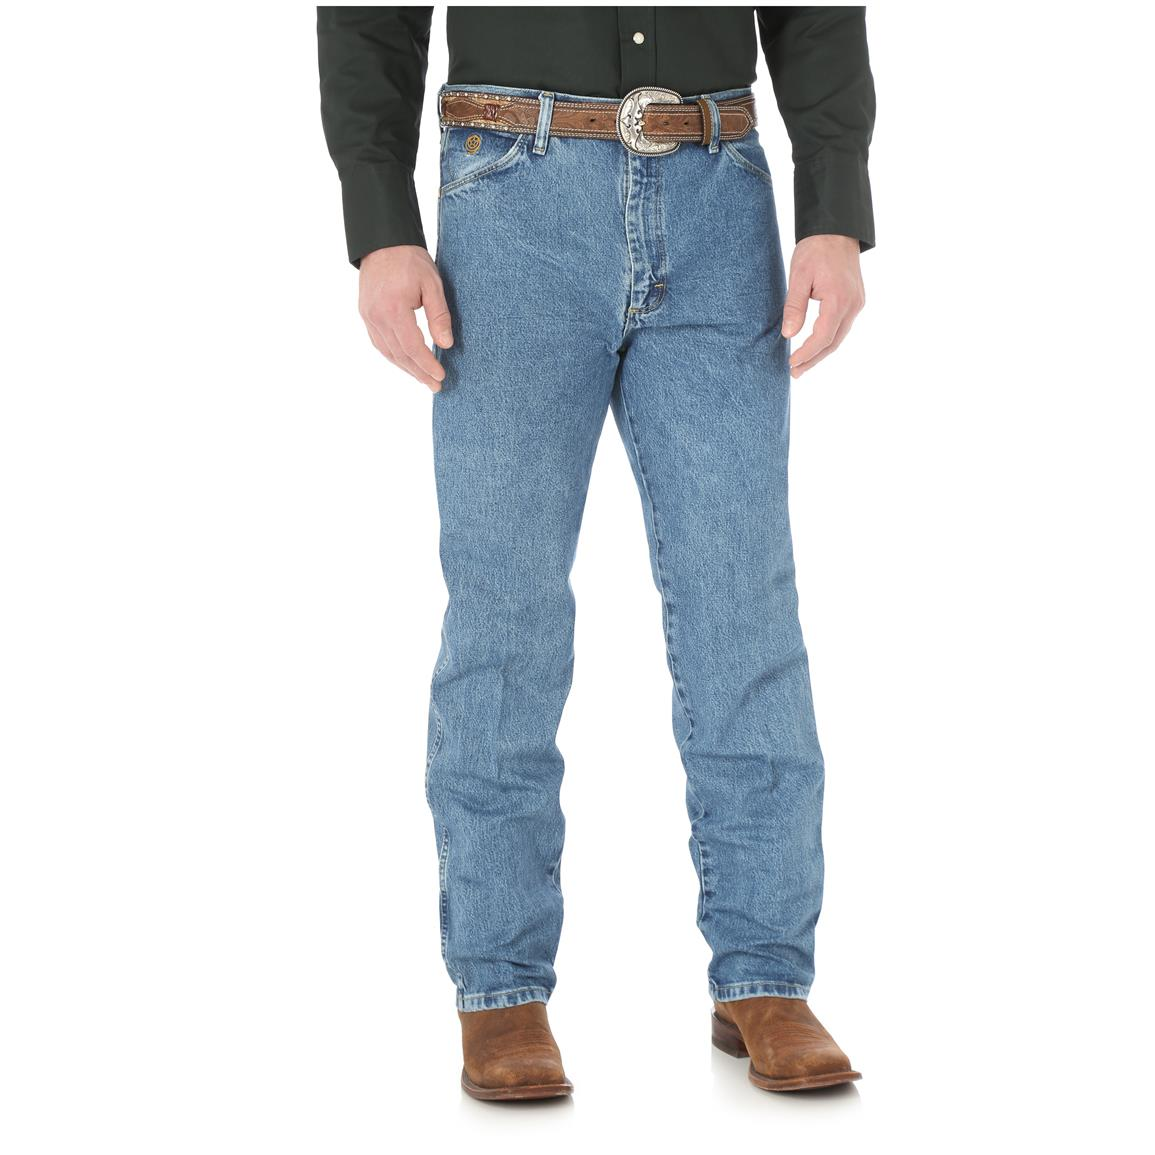 Wrangler Men's George Strait Cowboy Cut Original Fit Jeans, Stone Washed